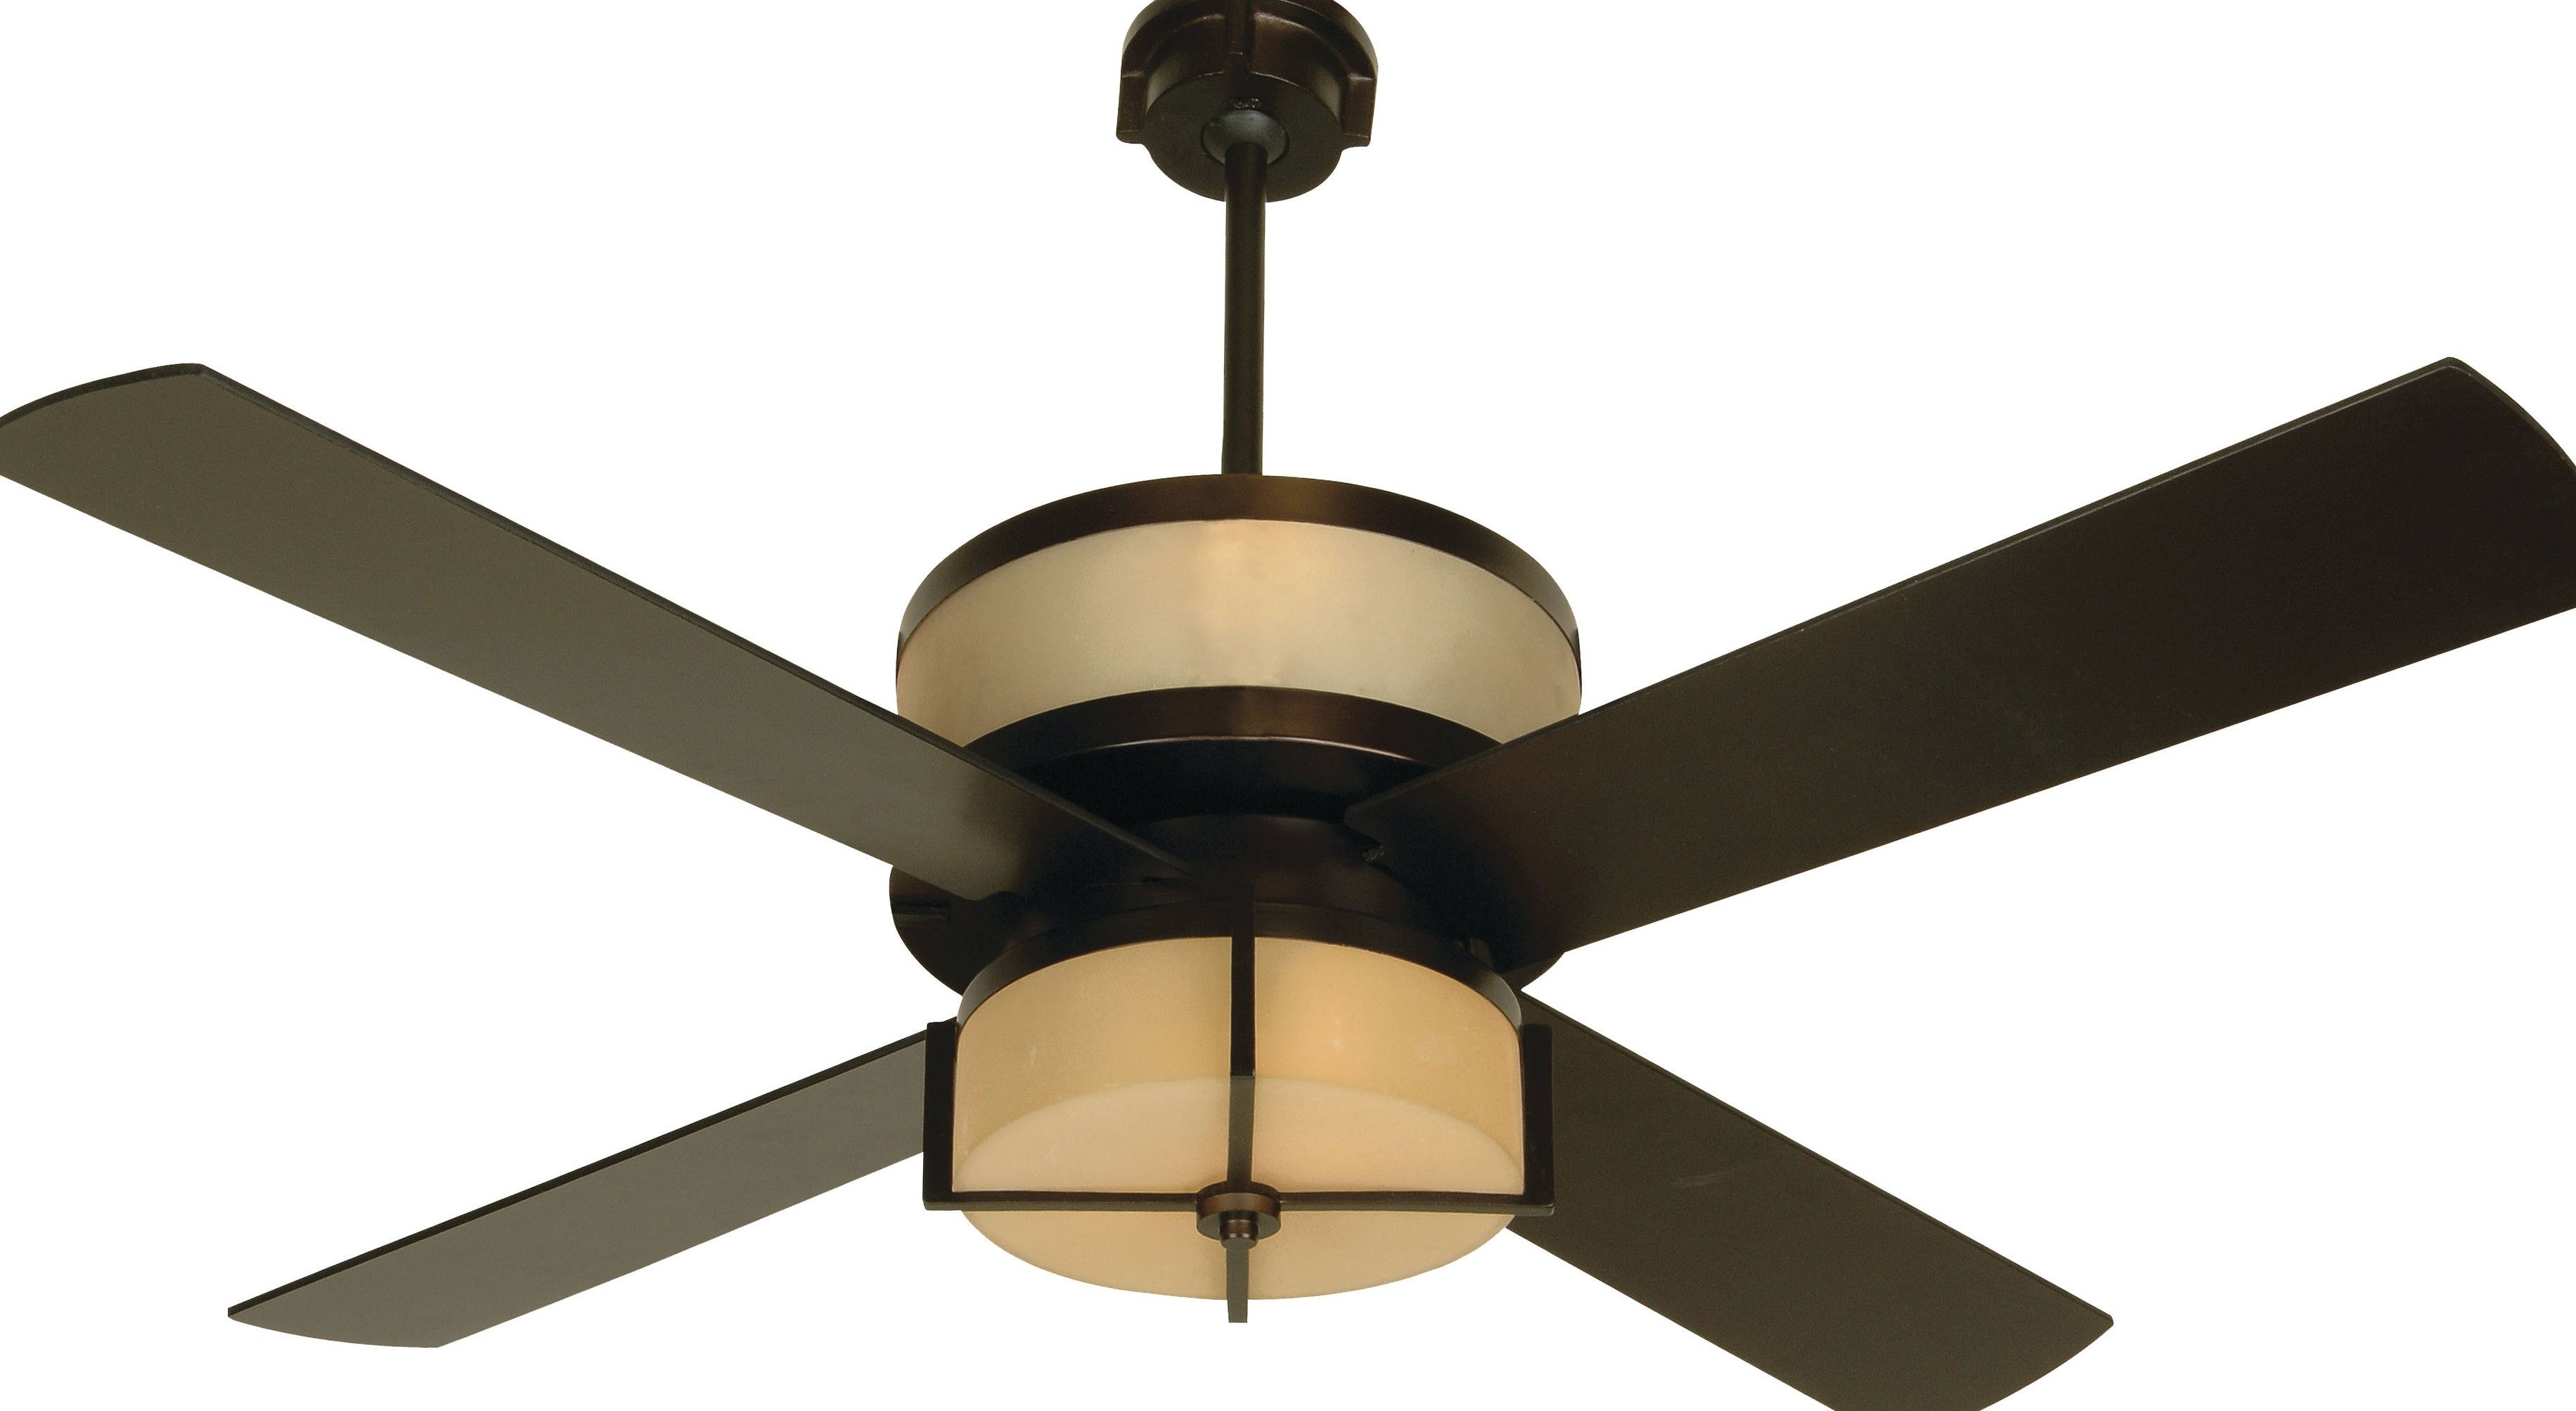 Outdoor Ceiling Fans With Remote Control Lights Within Most Current Incredible Ceiling Fan Design Lumos Havells Rectangular Black Remote (View 20 of 20)